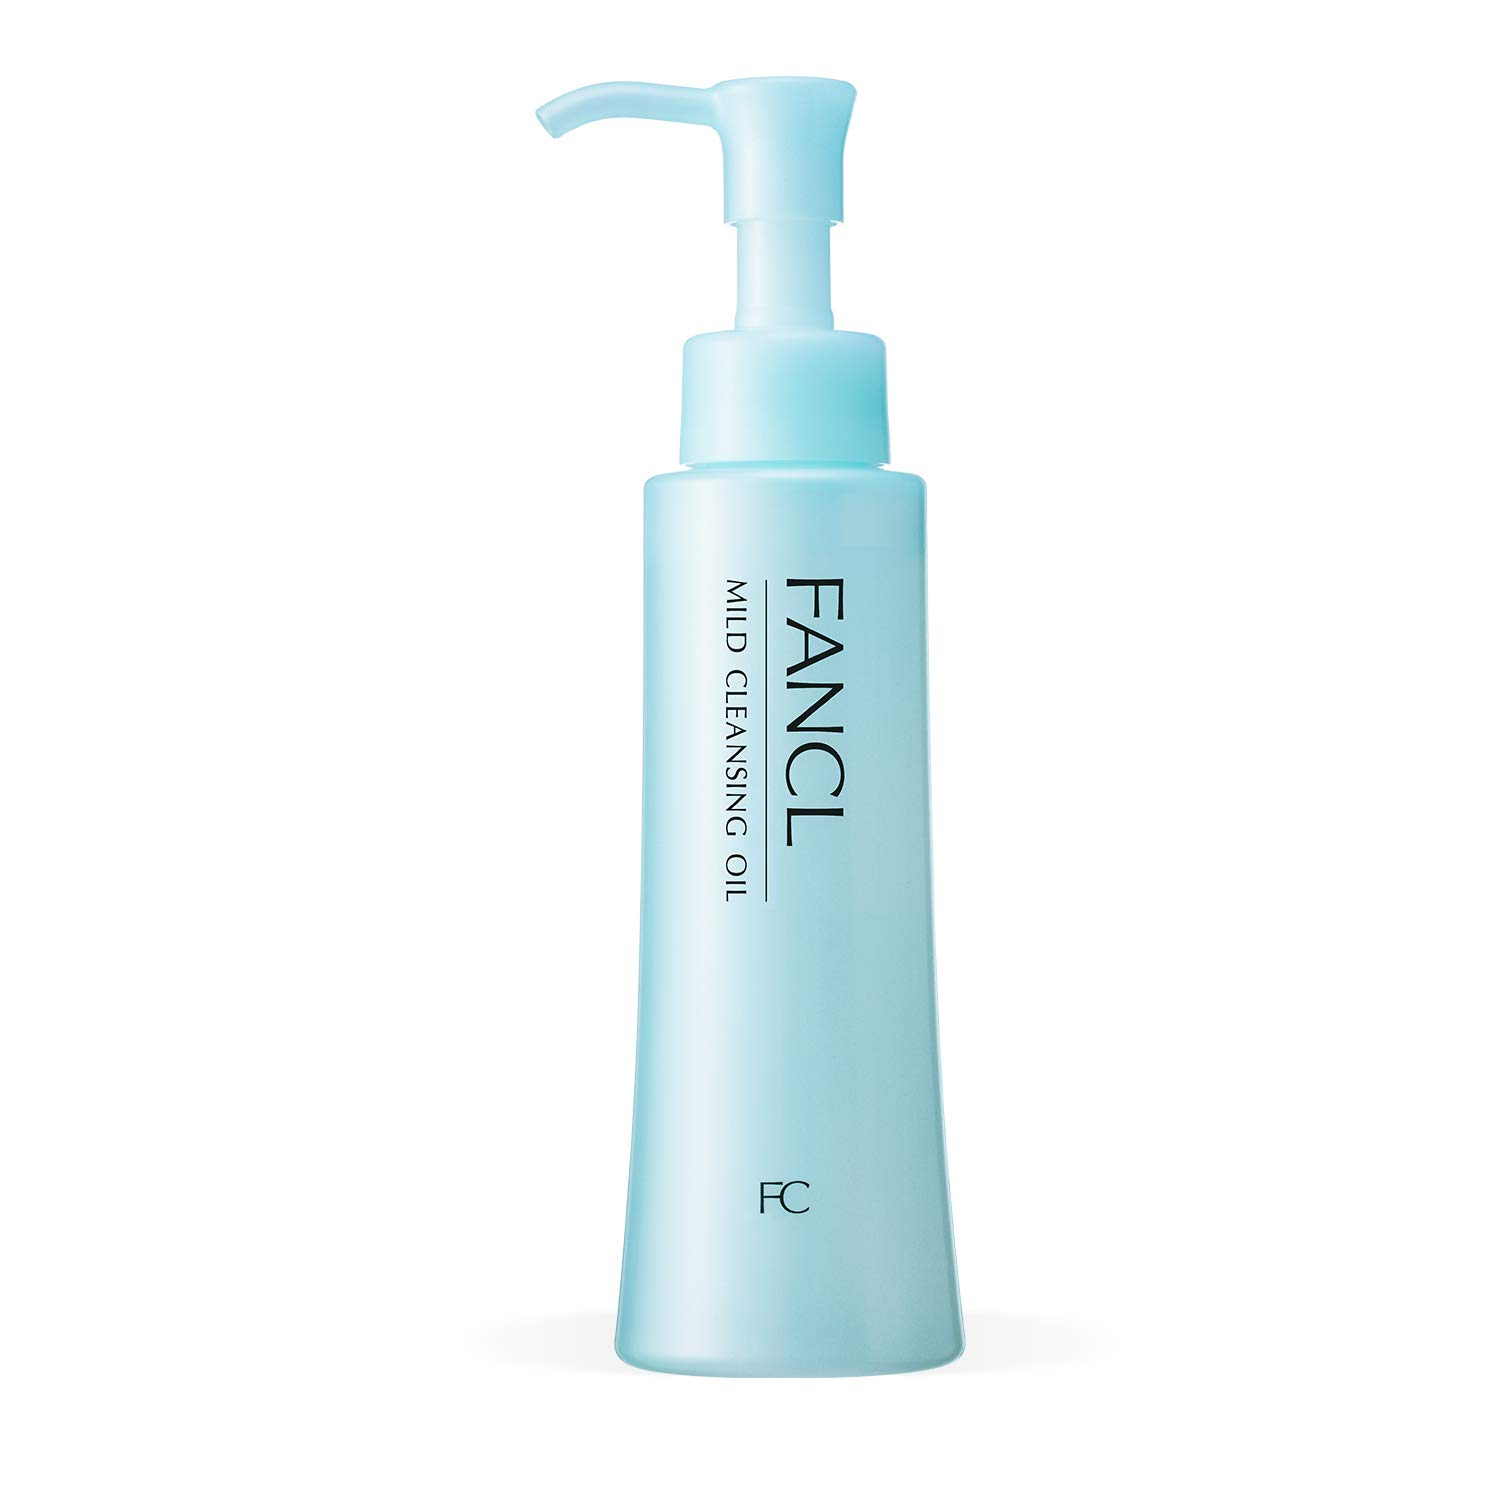 FANCL Mild Cleansing Oil - 100% Preservative Free, Clean Skincare for Sensitive Skin [US Exclusive Edition]